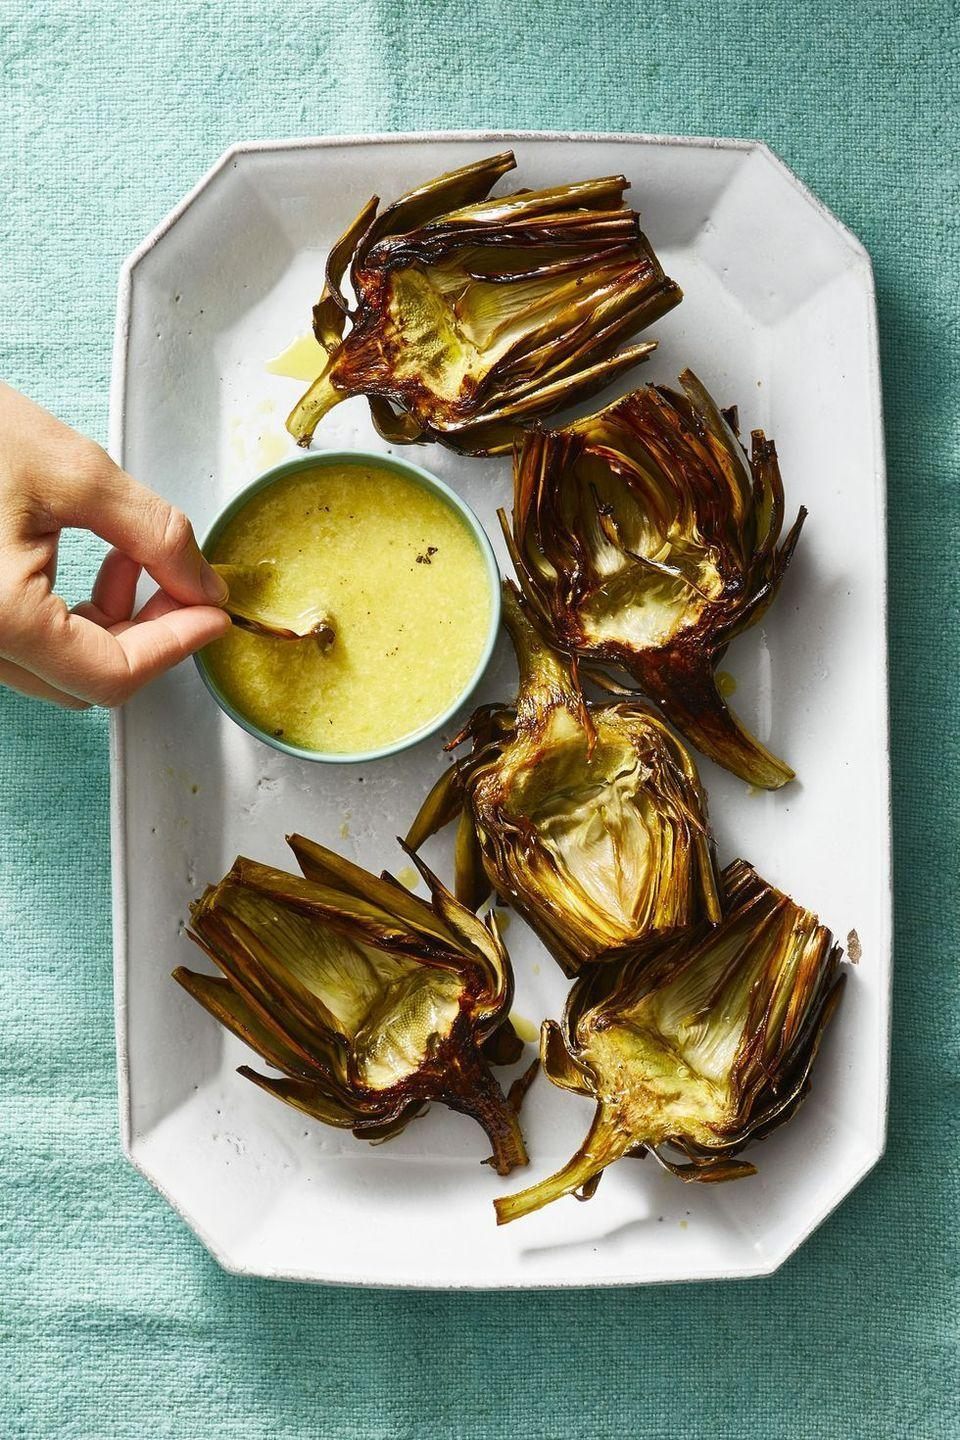 """<p>Artichokes might not be a traditional tailgate food, but that doesn't mean this roasted recipe won't fly off your table just as quickly as the chips do. </p><p><em><a href=""""https://www.goodhousekeeping.com/food-recipes/easy/a19865653/roasted-artichokes-with-caesar-dip-recipe/"""" rel=""""nofollow noopener"""" target=""""_blank"""" data-ylk=""""slk:Get the recipe for Roasted Artichokes with Caesar Dip »"""" class=""""link rapid-noclick-resp"""">Get the recipe for Roasted Artichokes with Caesar Dip »</a></em></p>"""